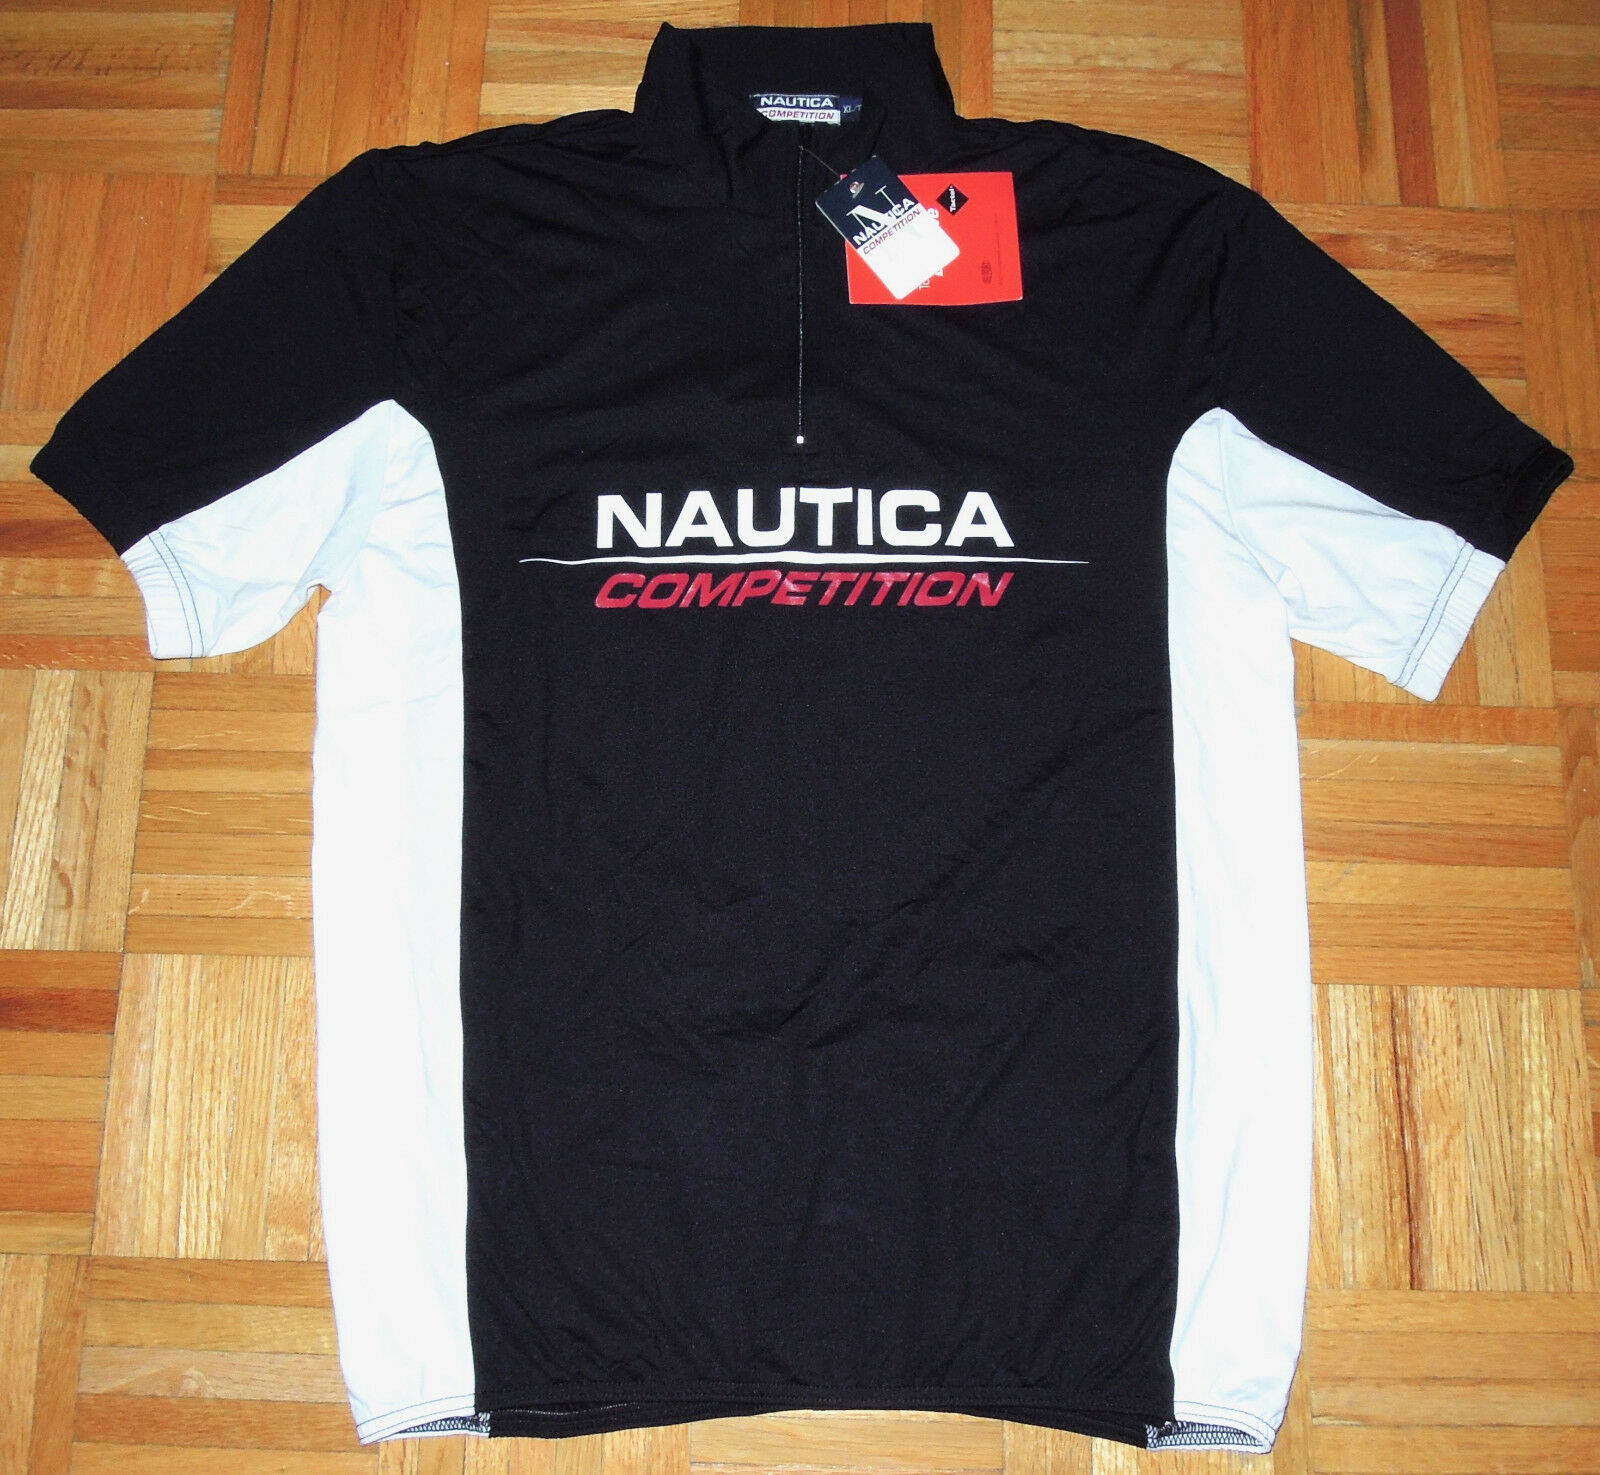 VTG 90s NAUTICA COMPETITION Cycling Jersey S/S 1/4 Zip HIP HOP Spellout XL NWT